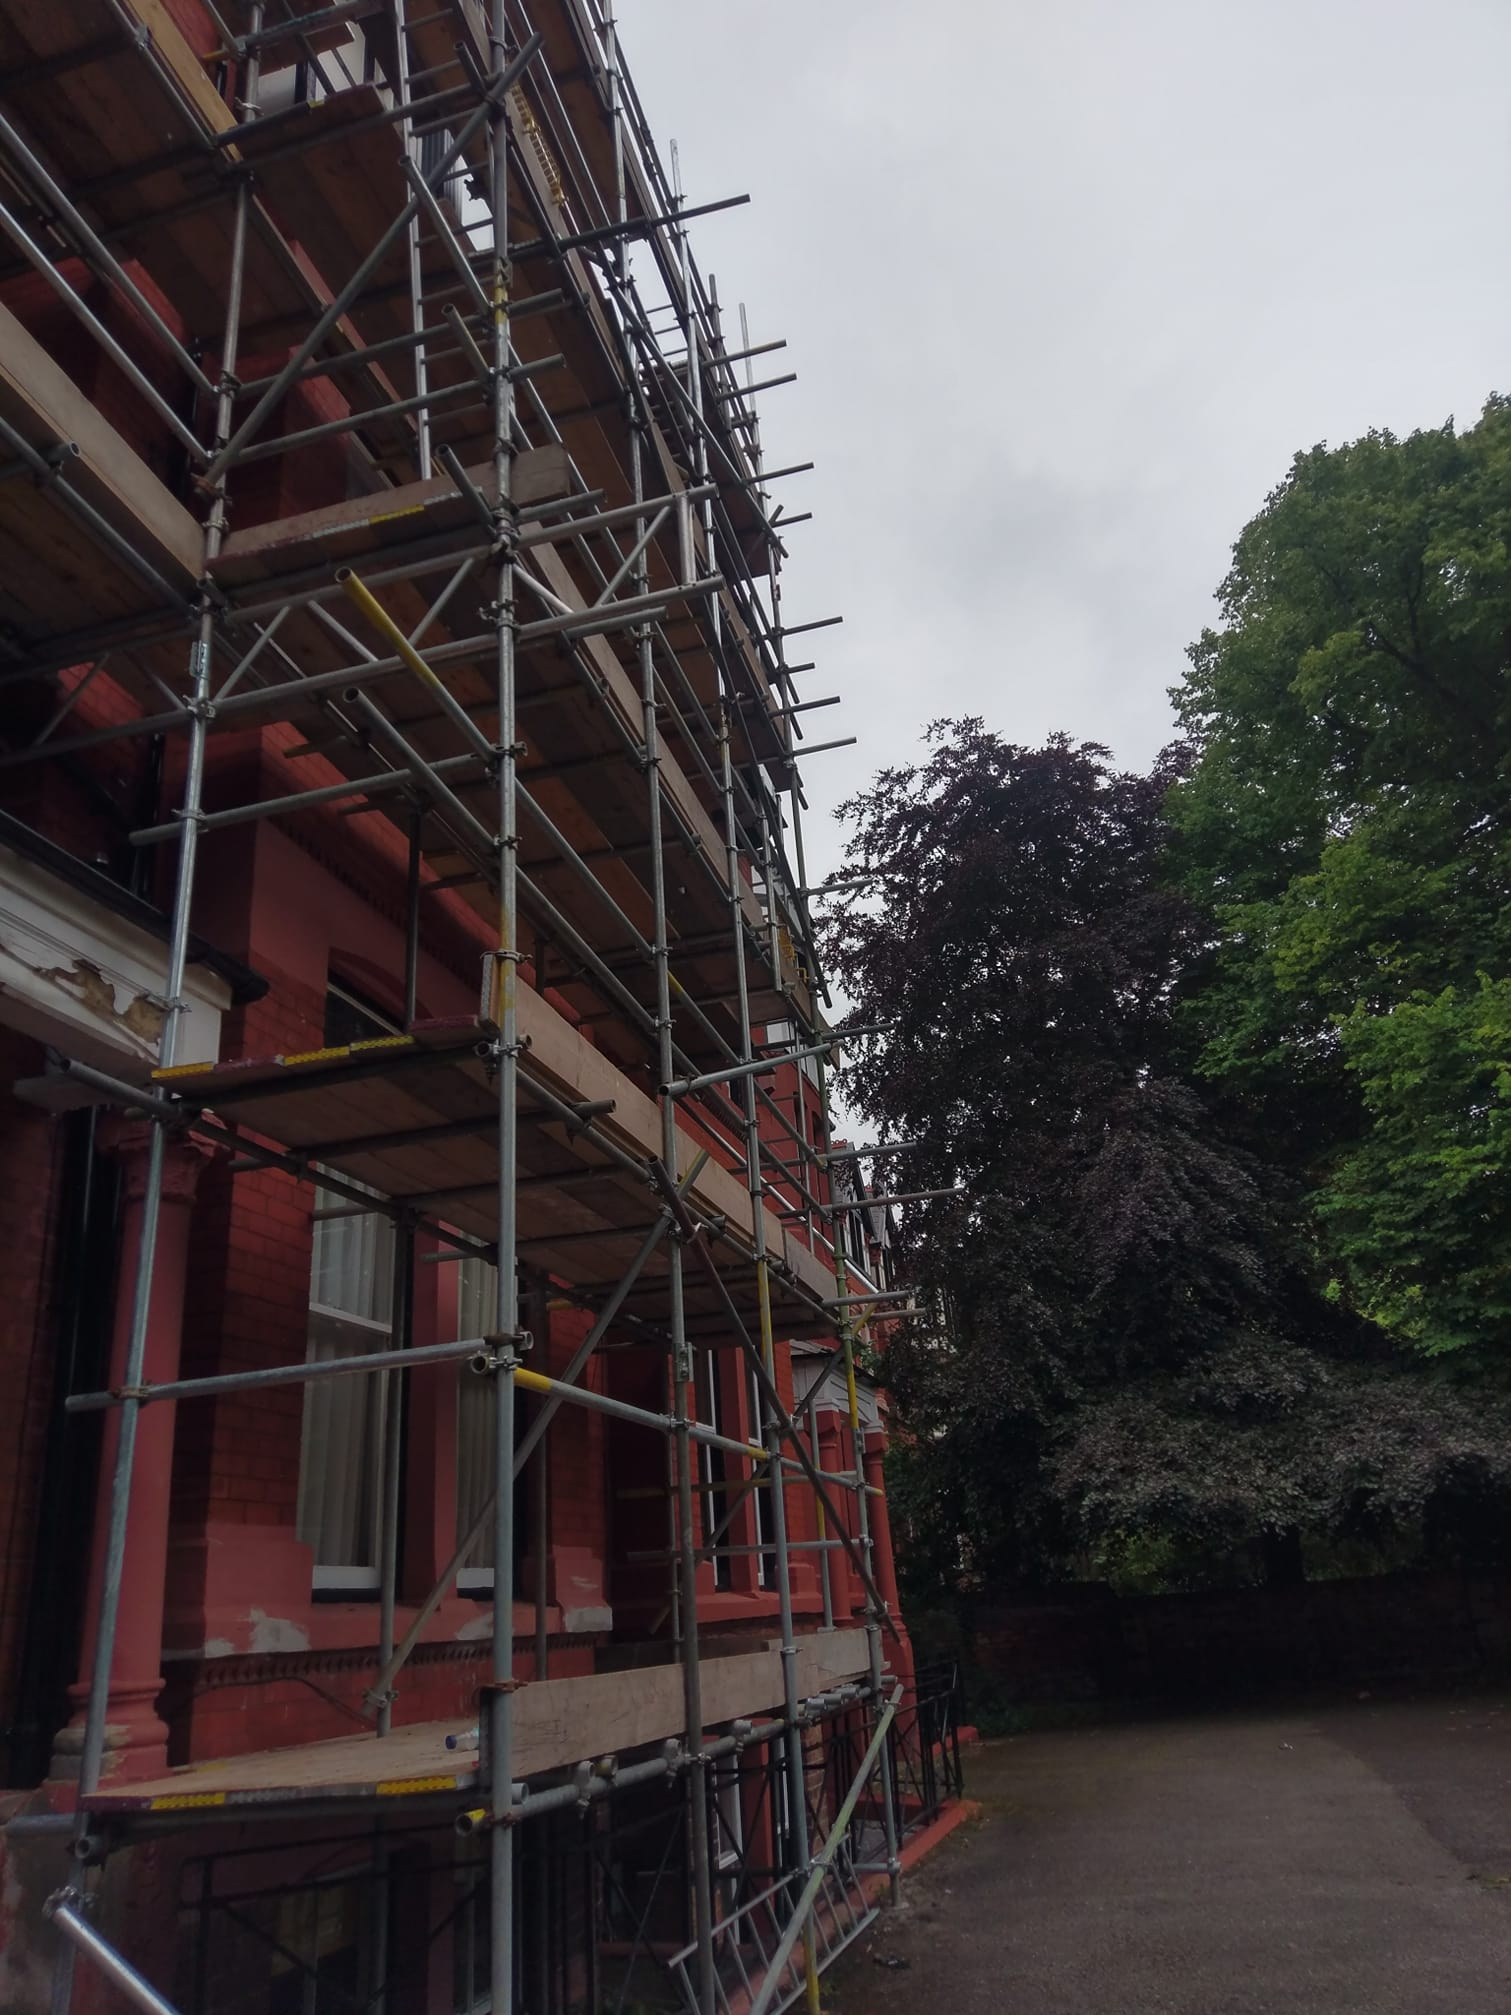 Busy day in Liverpool making repairs to damaged stone work with years of poor repairs and damage from fixings being placed in the stone work. North Wales, North West, Wirral, Liverpool & Cheshire UK